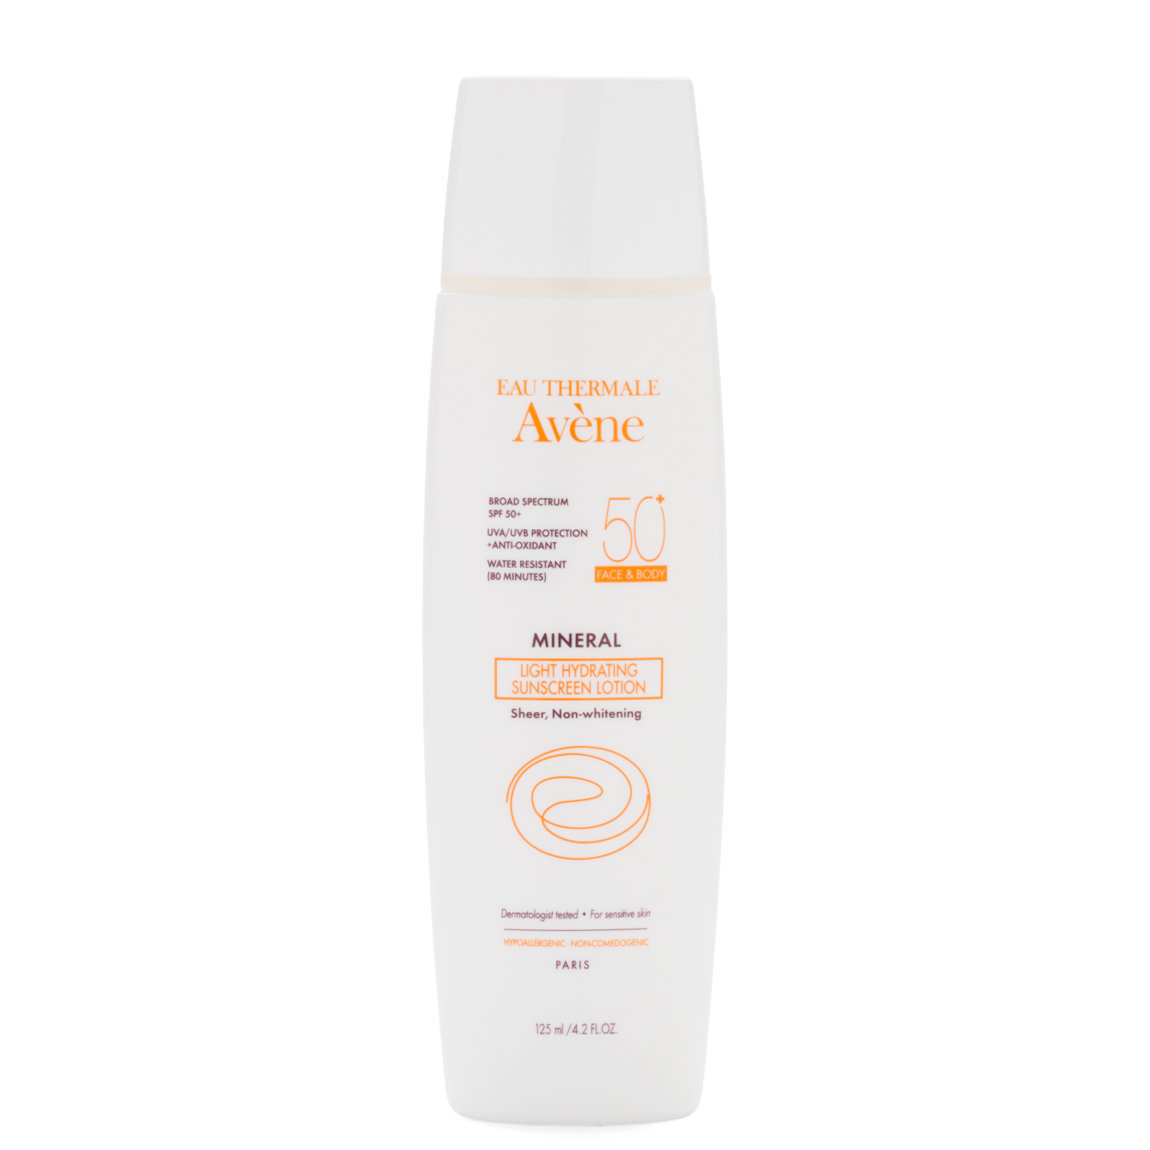 Eau Thermale Av 232 Ne Mineral Light Hydrating Sunscreen